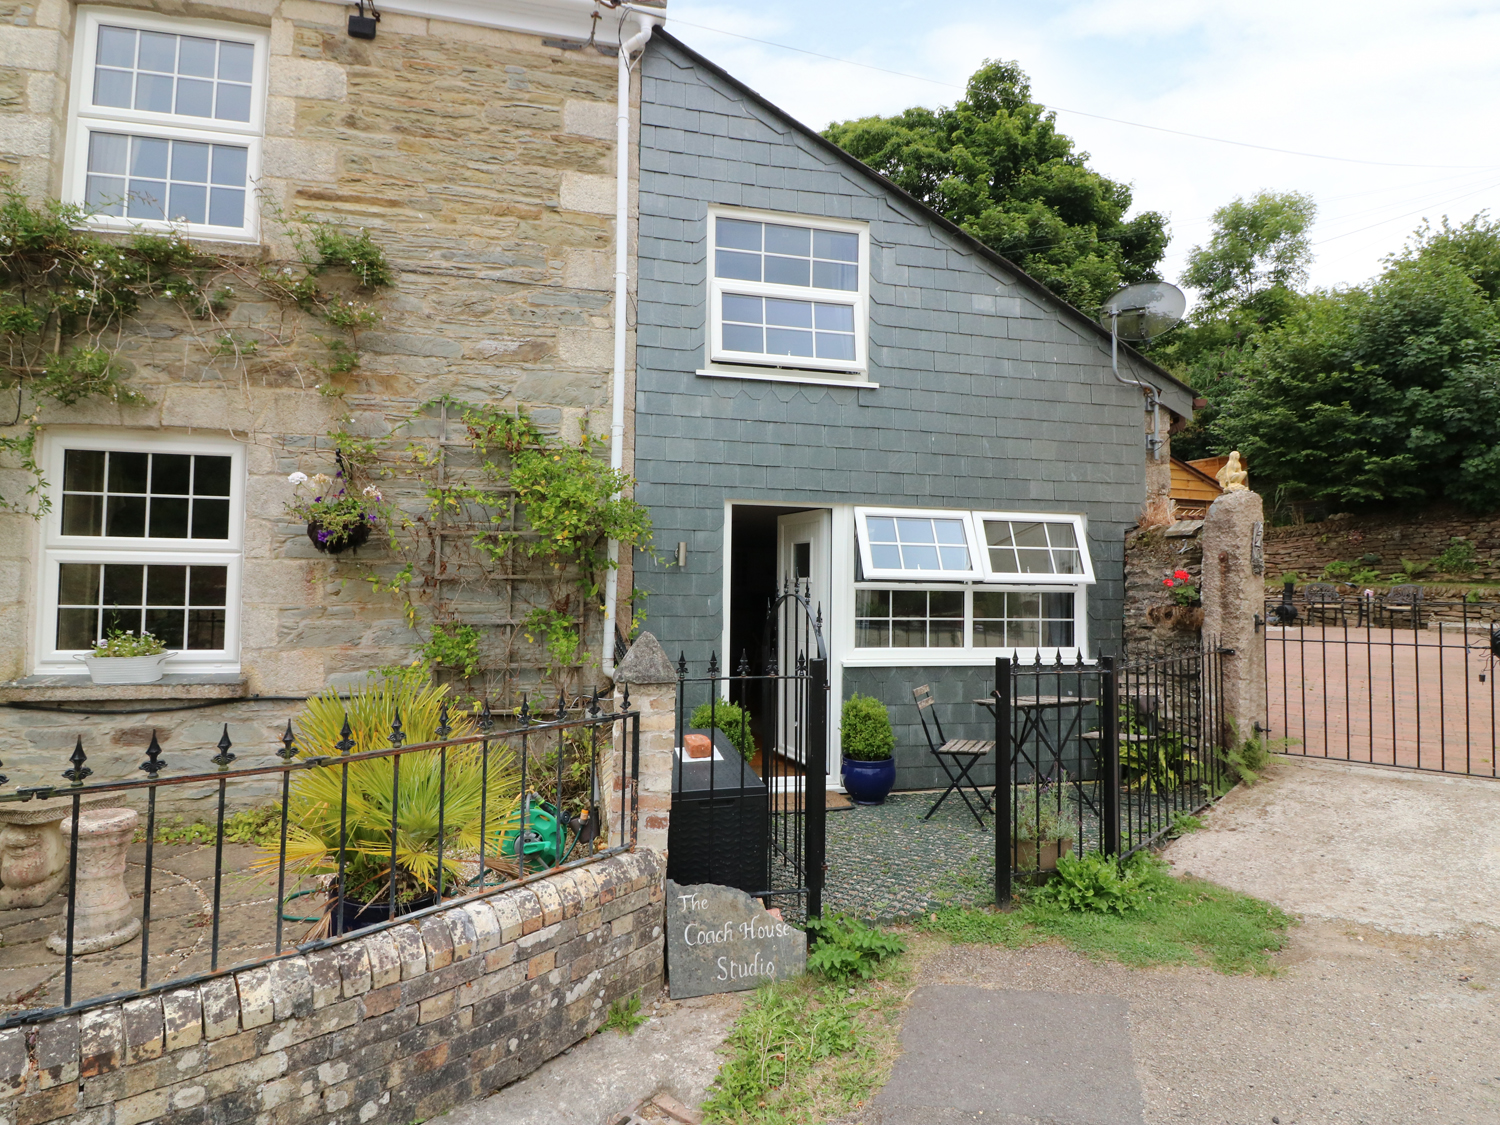 1 bedroom Cottage for rent in Probus